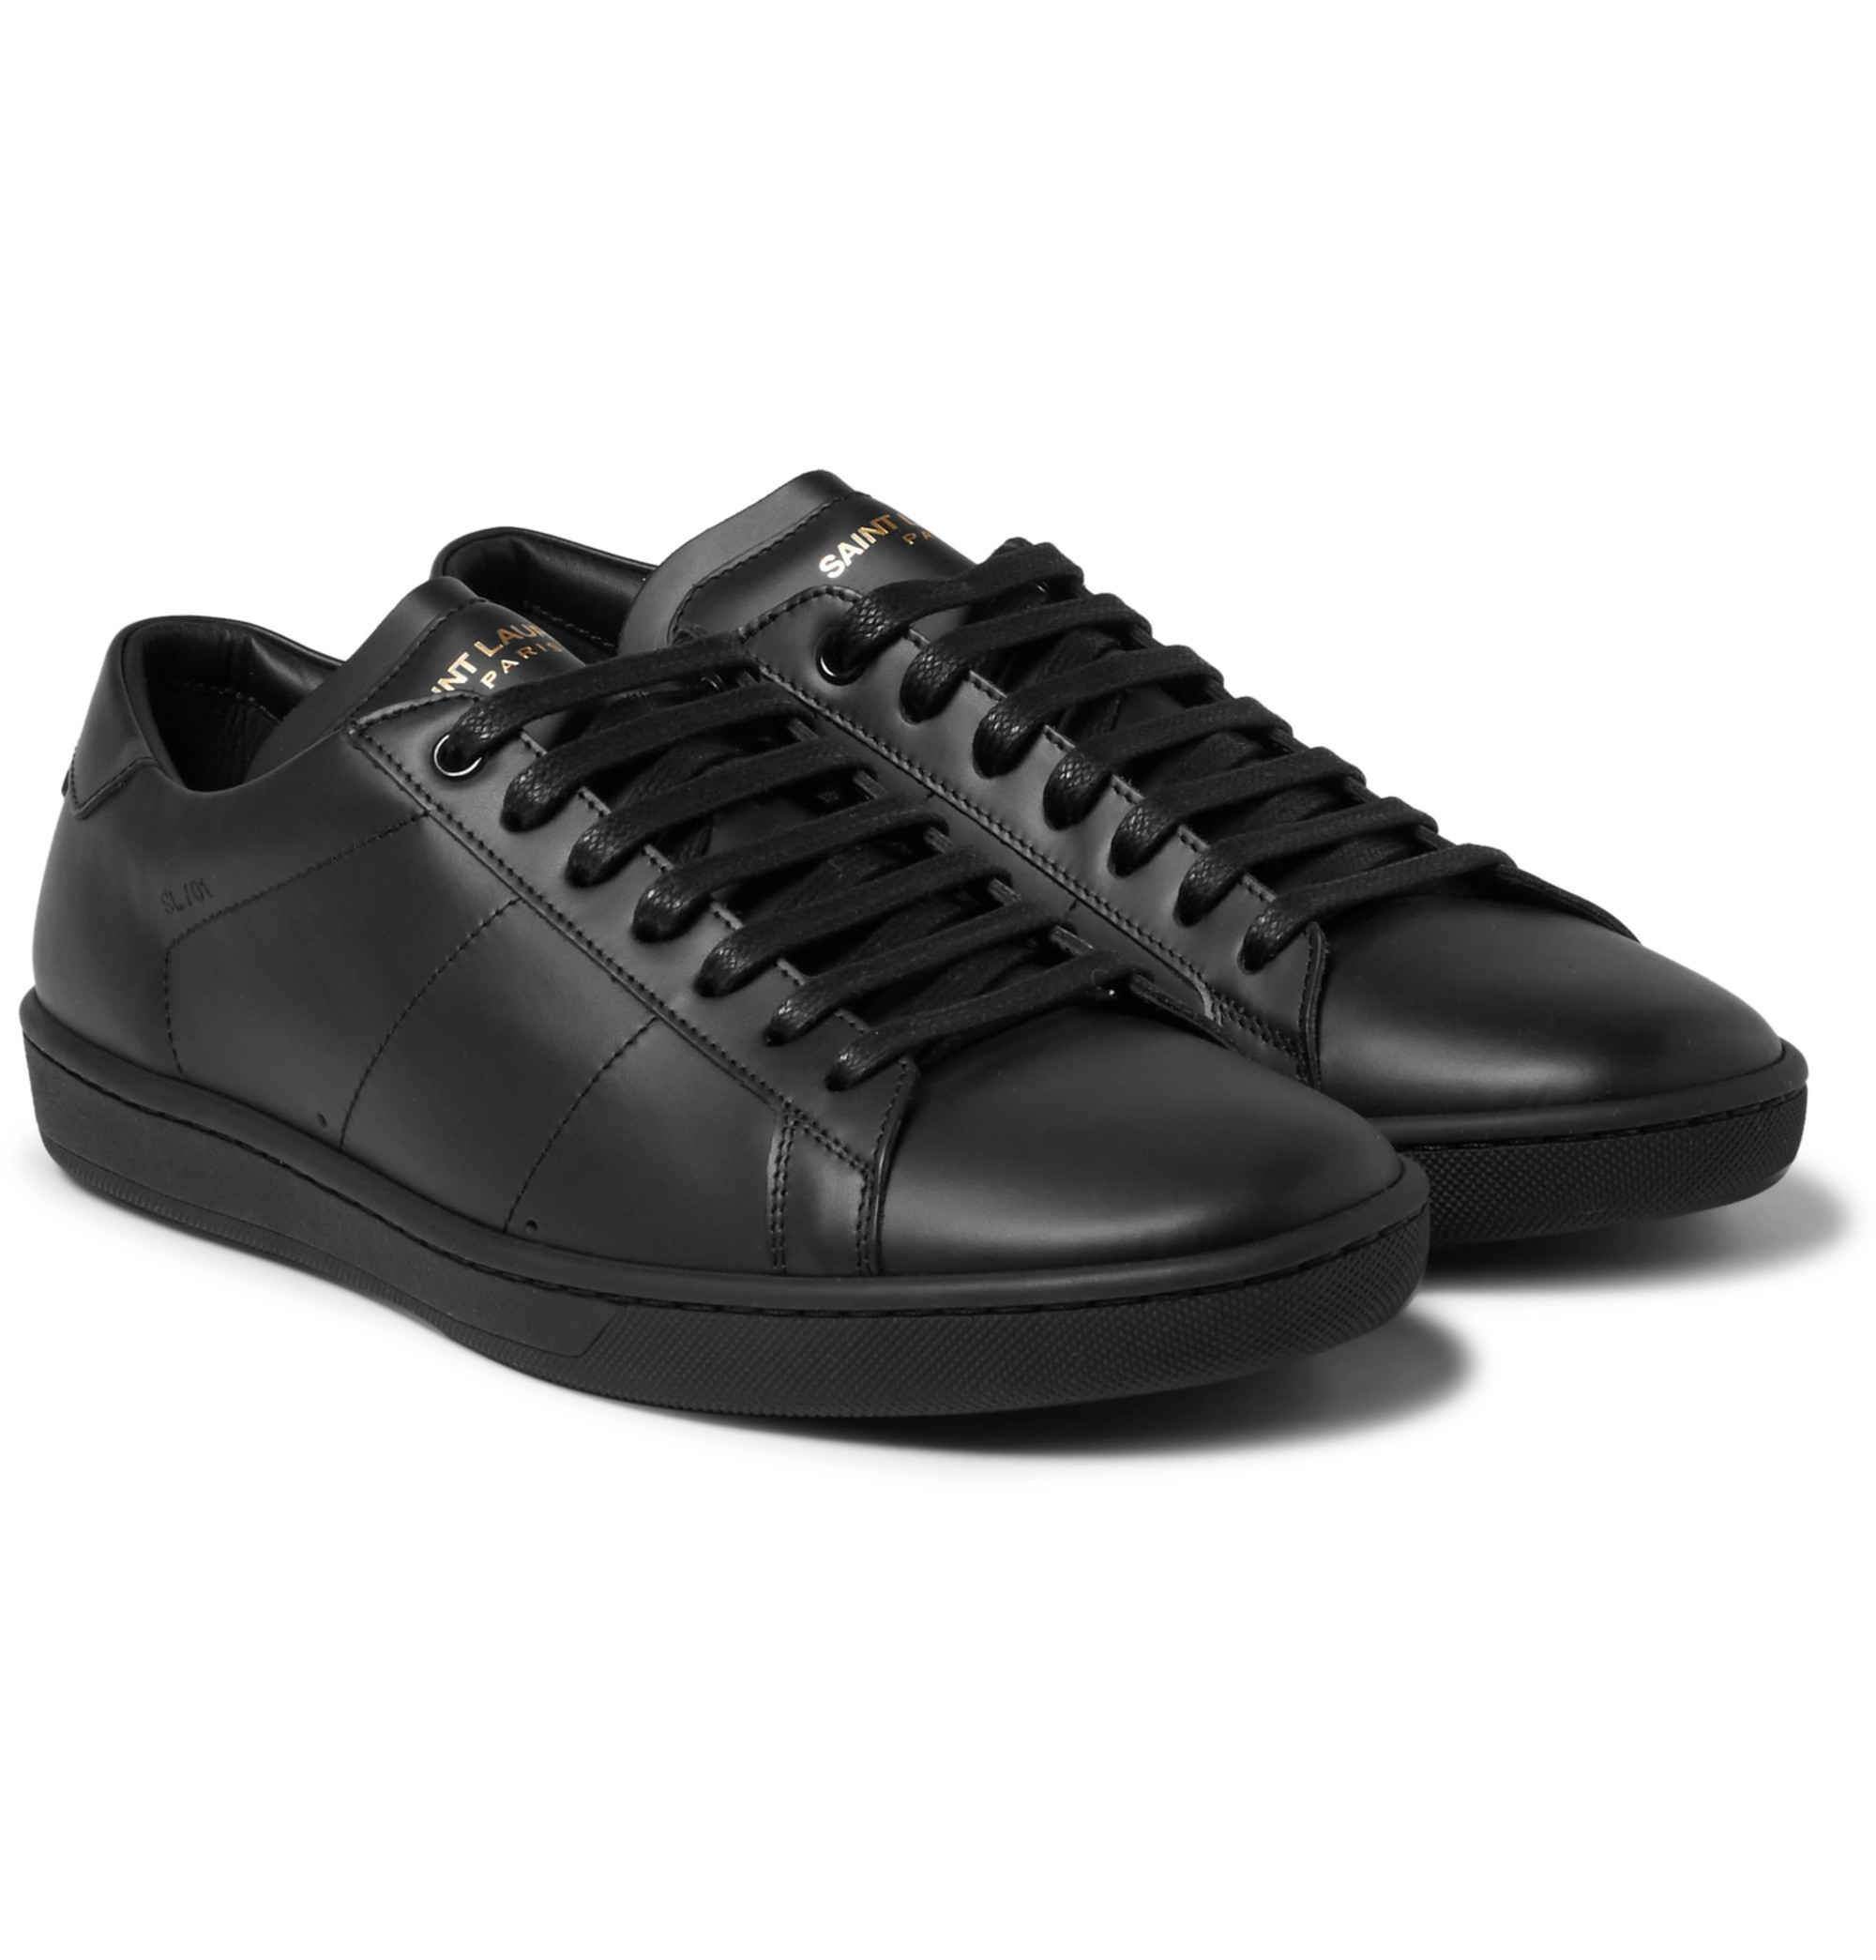 SL/01 Court Classic Leather Sneakers by